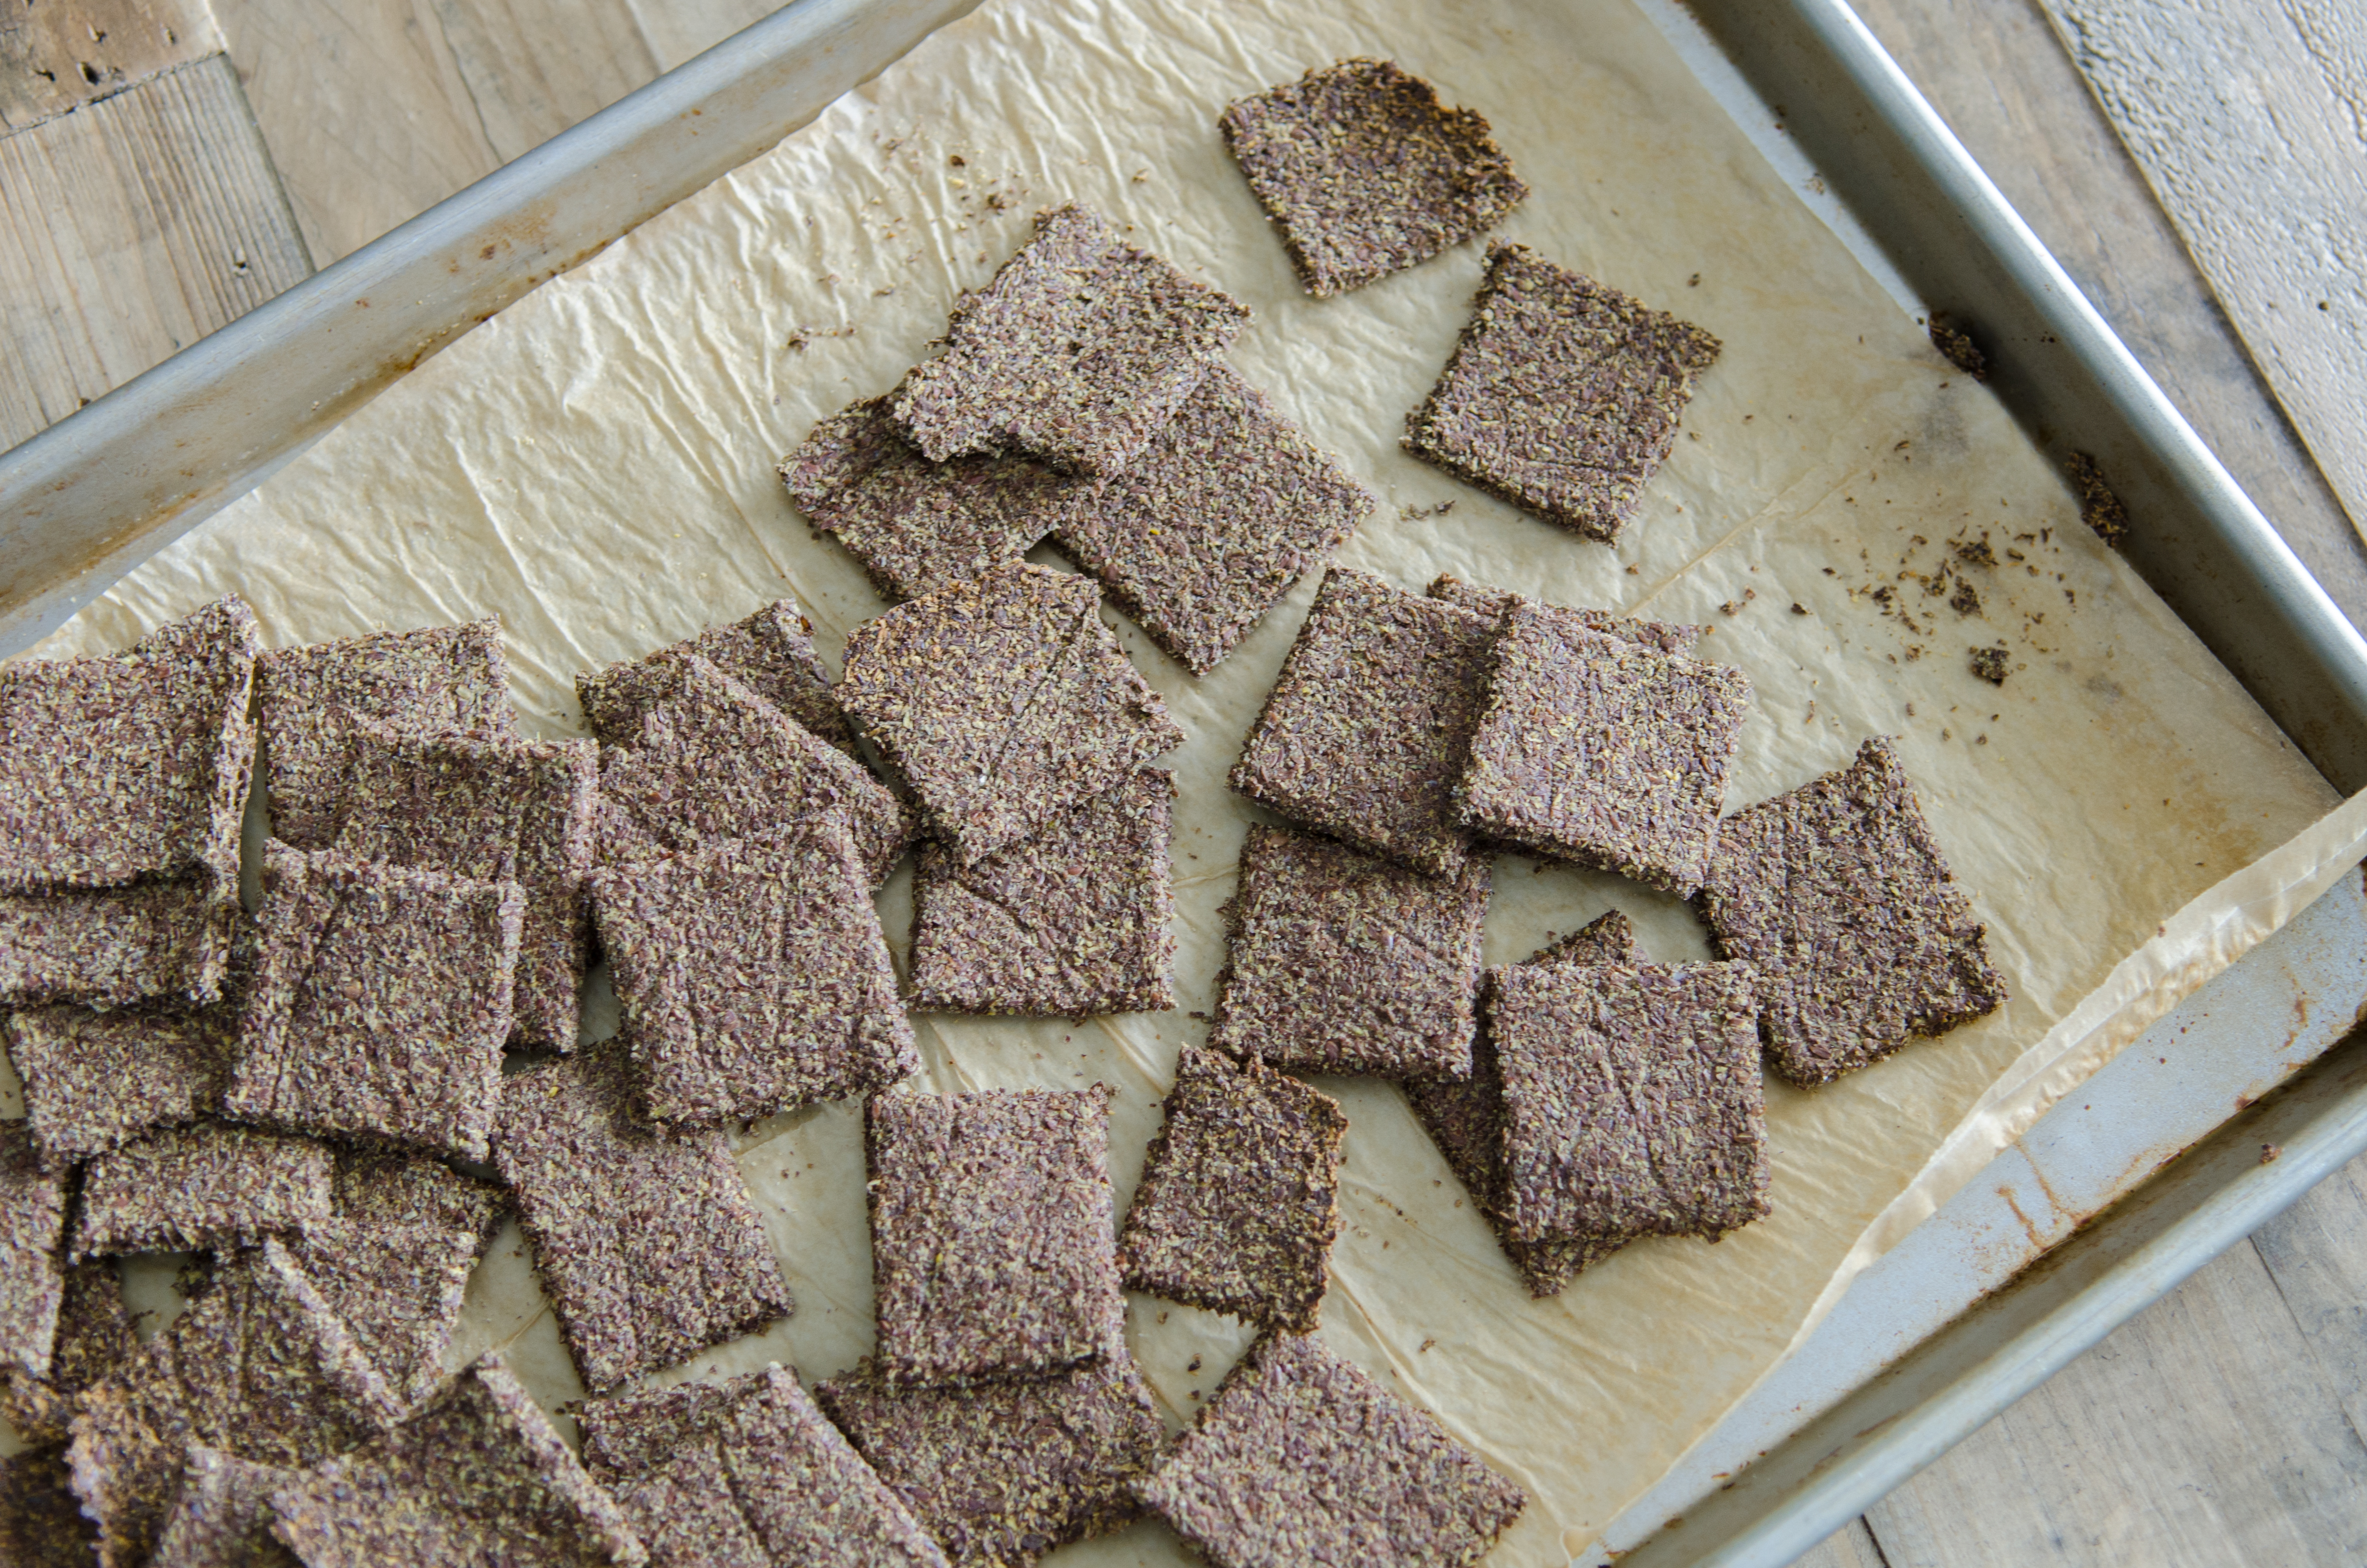 Salt and Pepper Flax Crackers that meet almost all dietary needs- vegan, gluten free, paleo // Bob's Red Mill